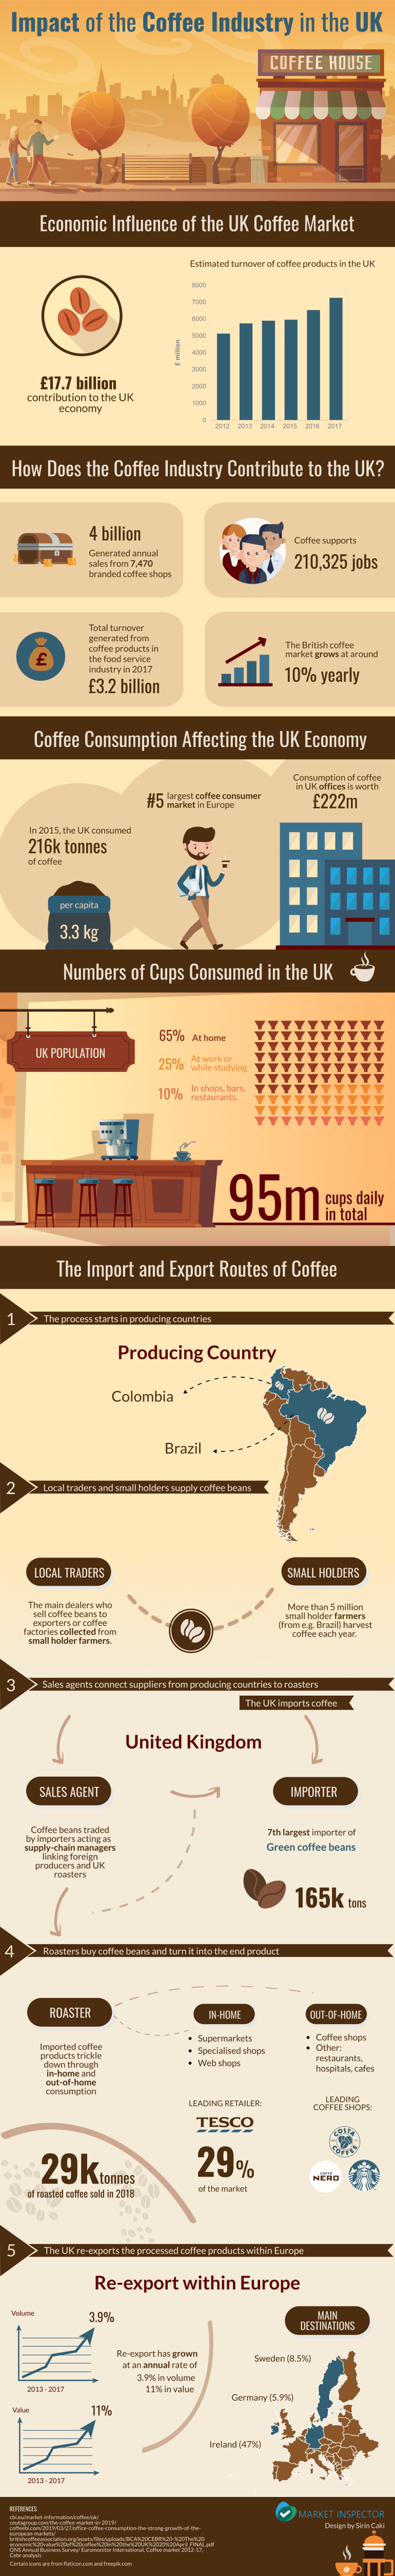 Impact of the Coffee Industry in the UK